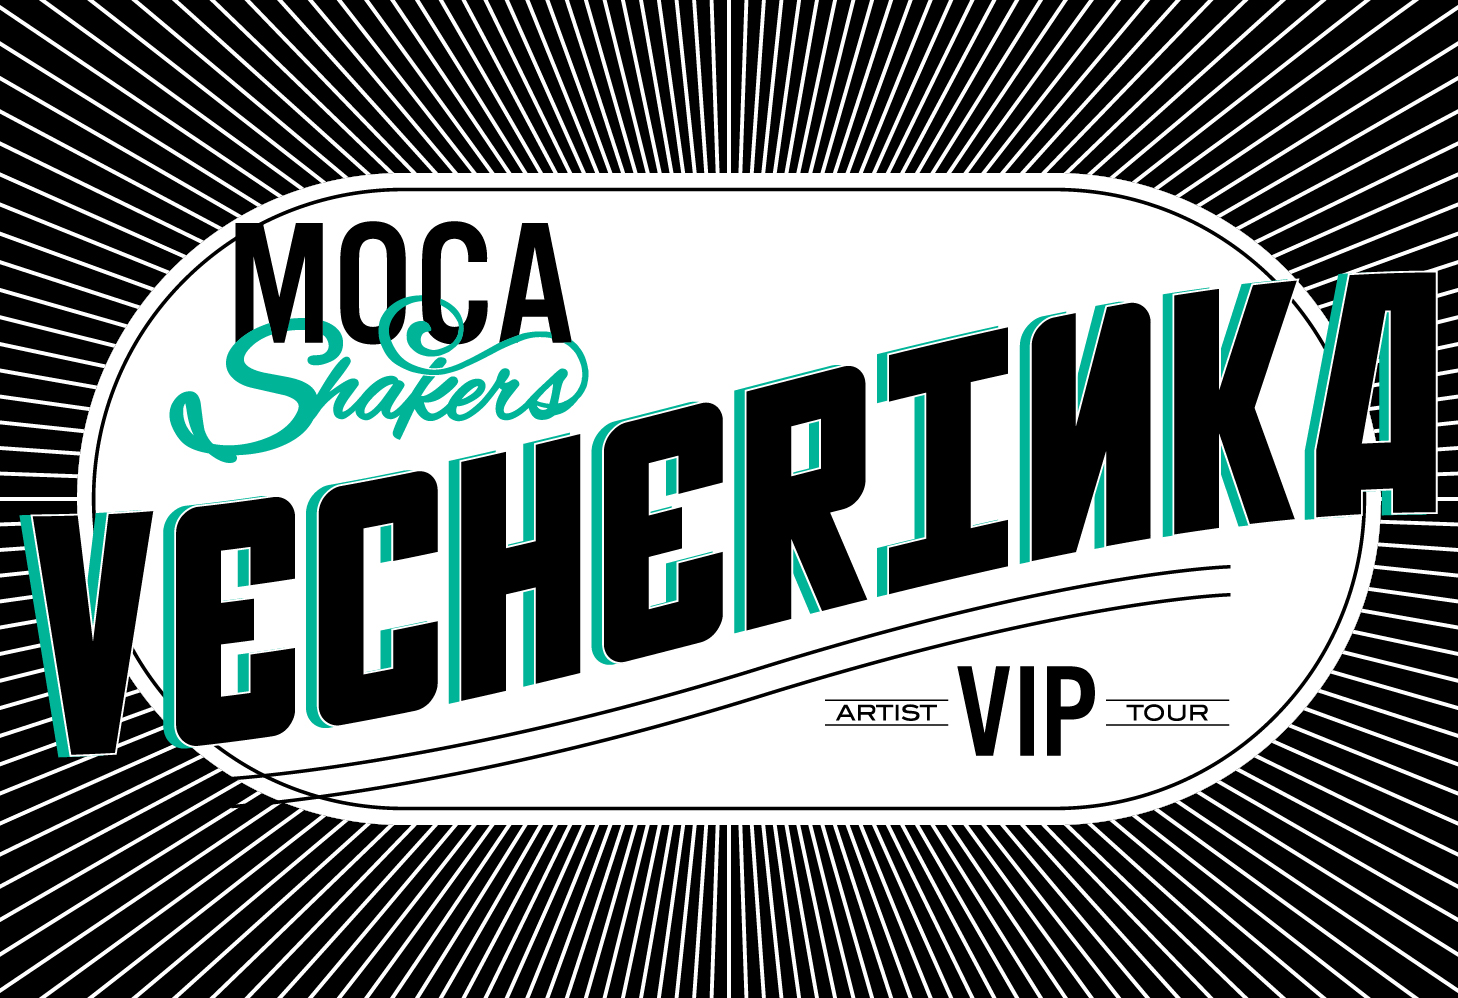 MOCA SHAKERS | Vecherinka